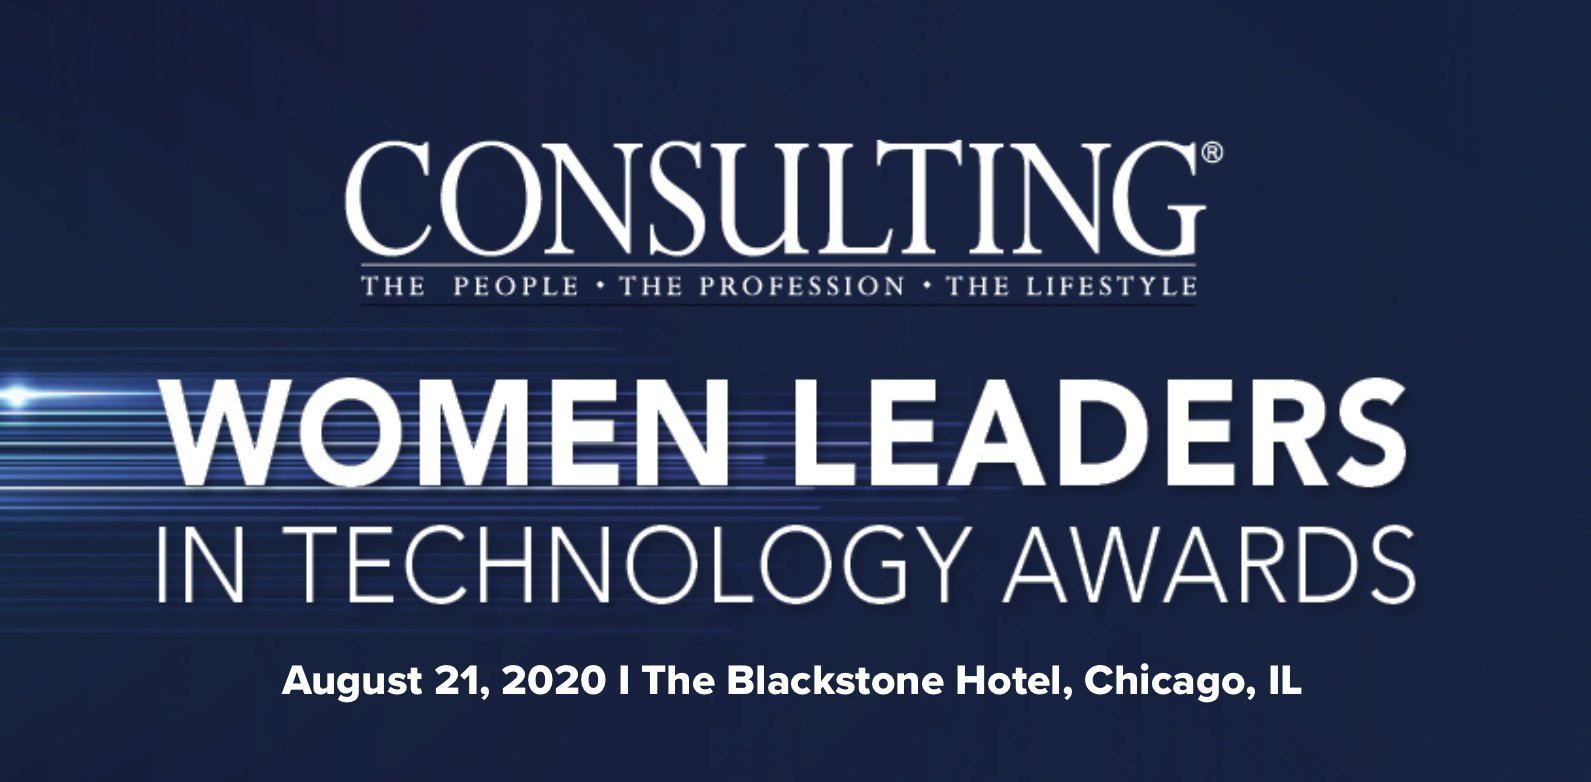 Consulting Magazine Reveals First-Ever Women Leaders in Technology